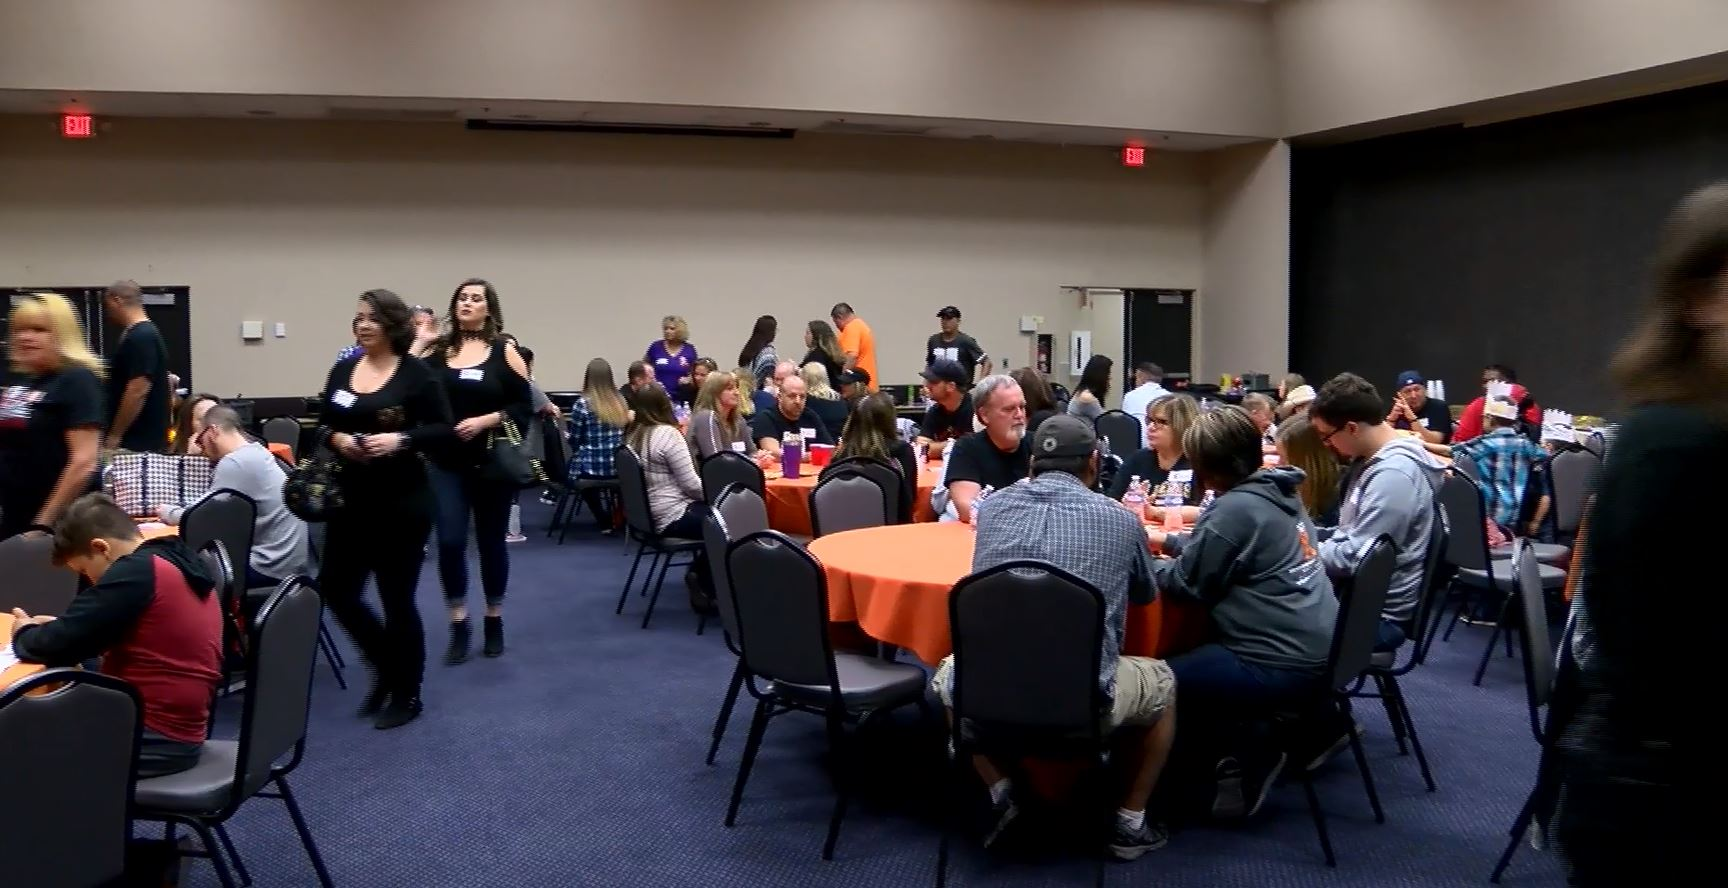 Survivors of the Route 91 Harvest Festival shooting gather Saturday, November 25, 2017, for a potluck dinner at the Henderson Events Center. (Corwin Hall/KSNV)